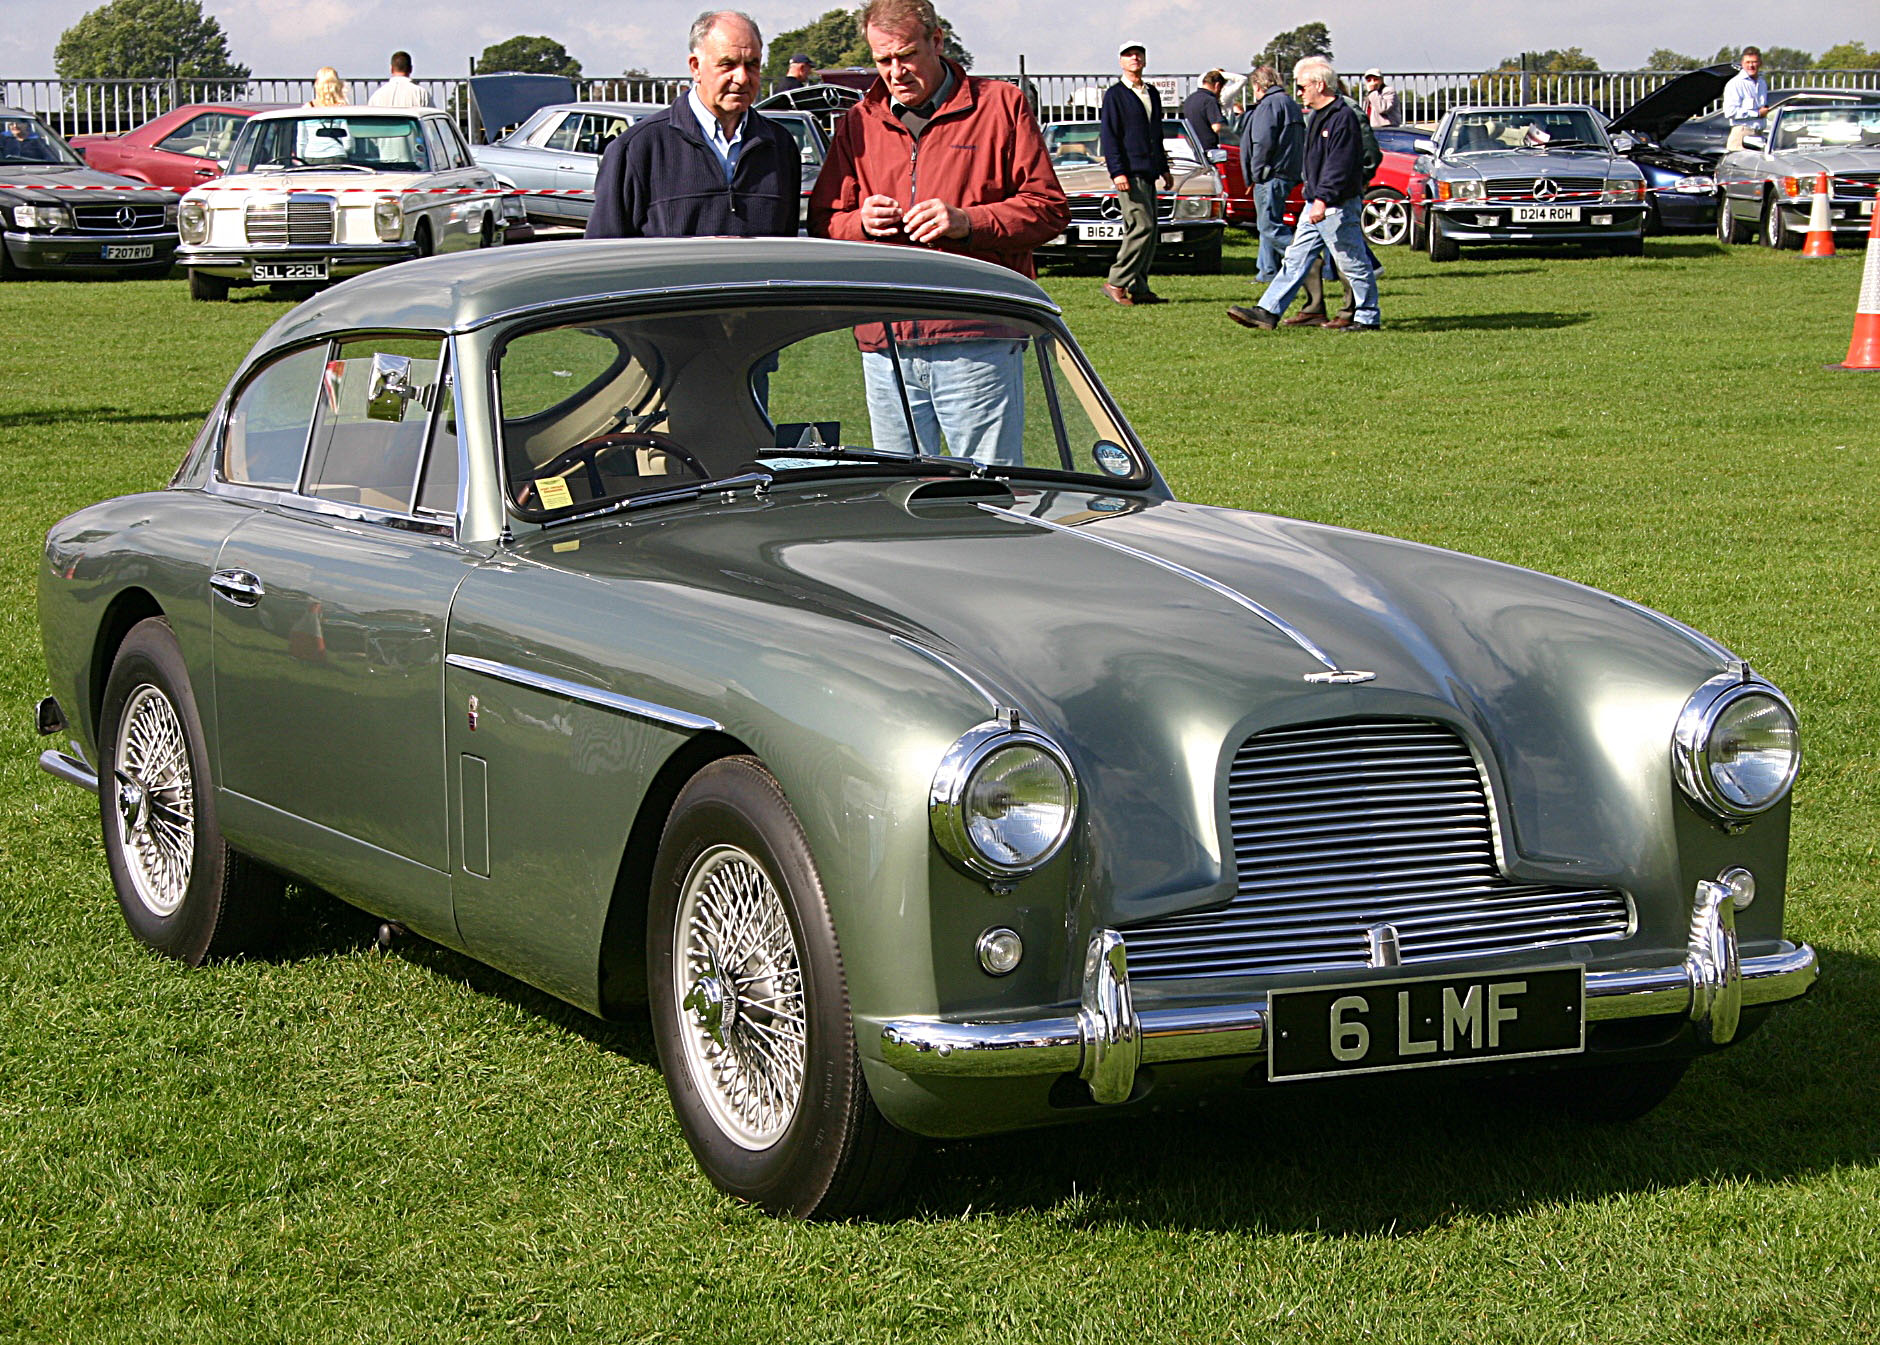 Aston Martin DB Group GT Racing Cars - Aston martin db2